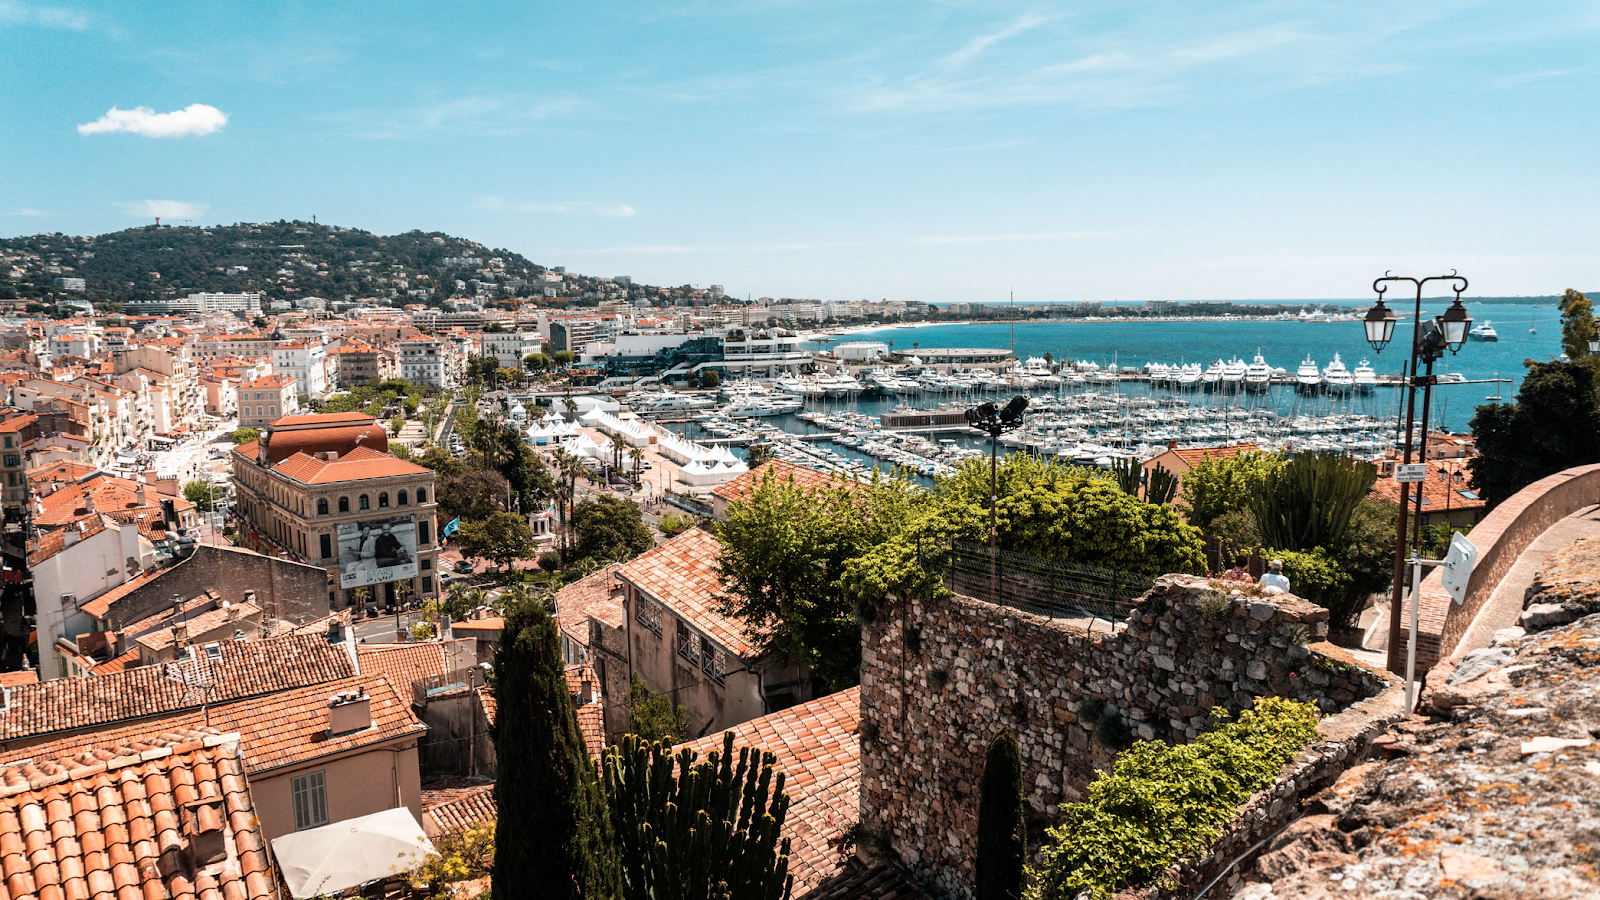 A view of Cannes and its harbour